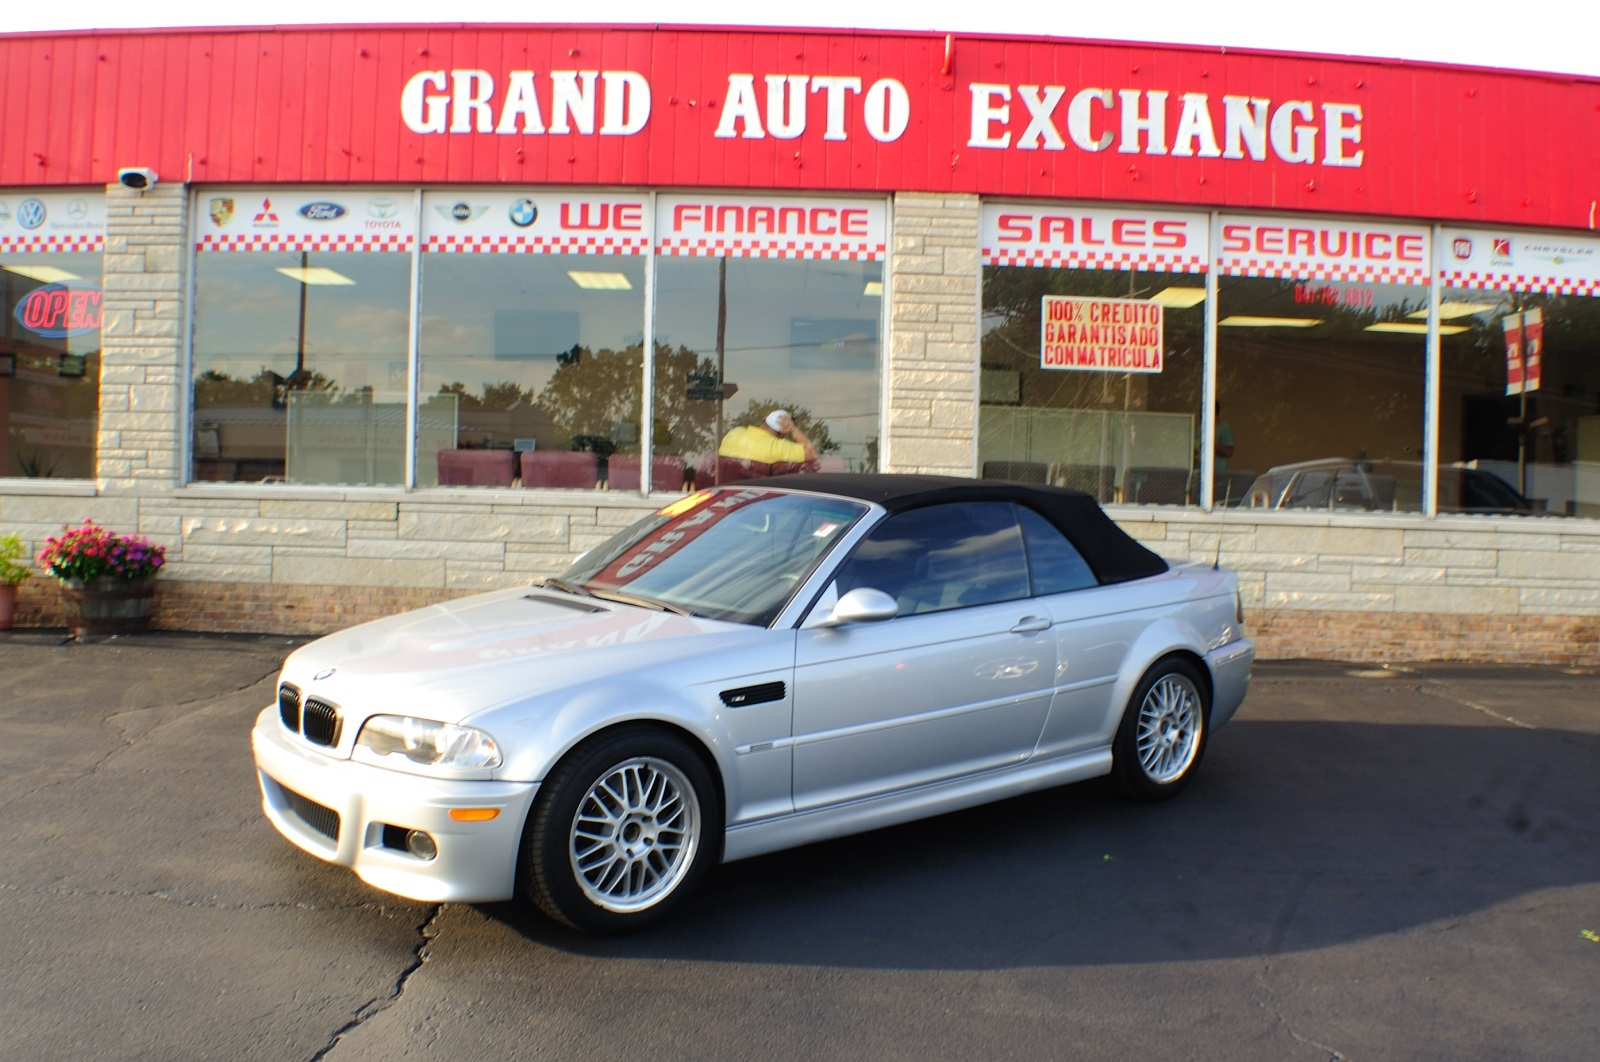 2006 BMW M3 Convertible Silver used car sale Antioch Zion Waukegan Lake County Illinois